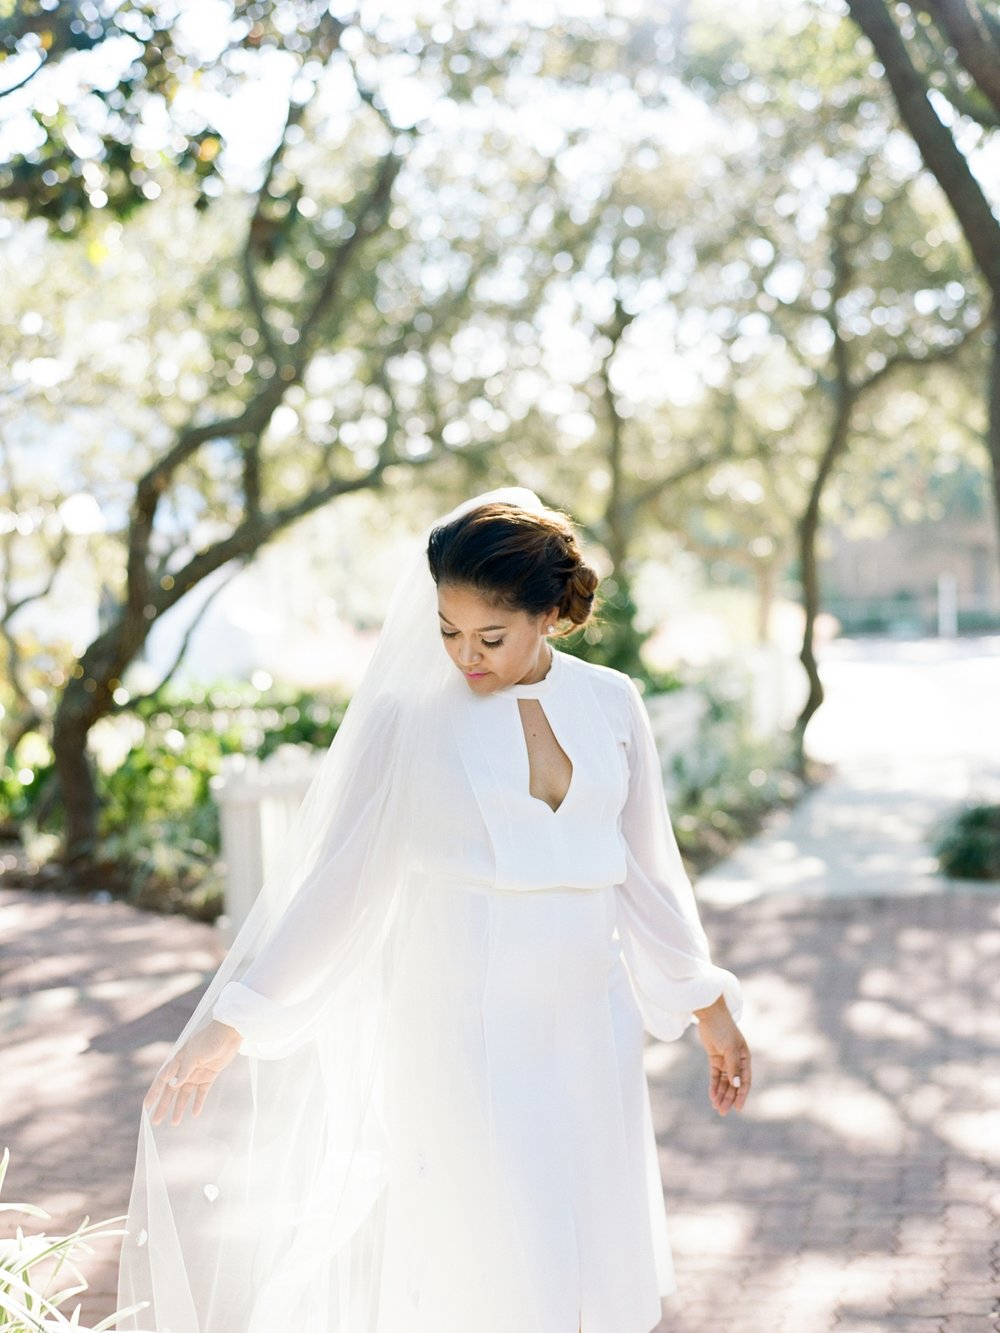 carillon_beach_wedding_photographer_shannon_griffin_0022.jpg